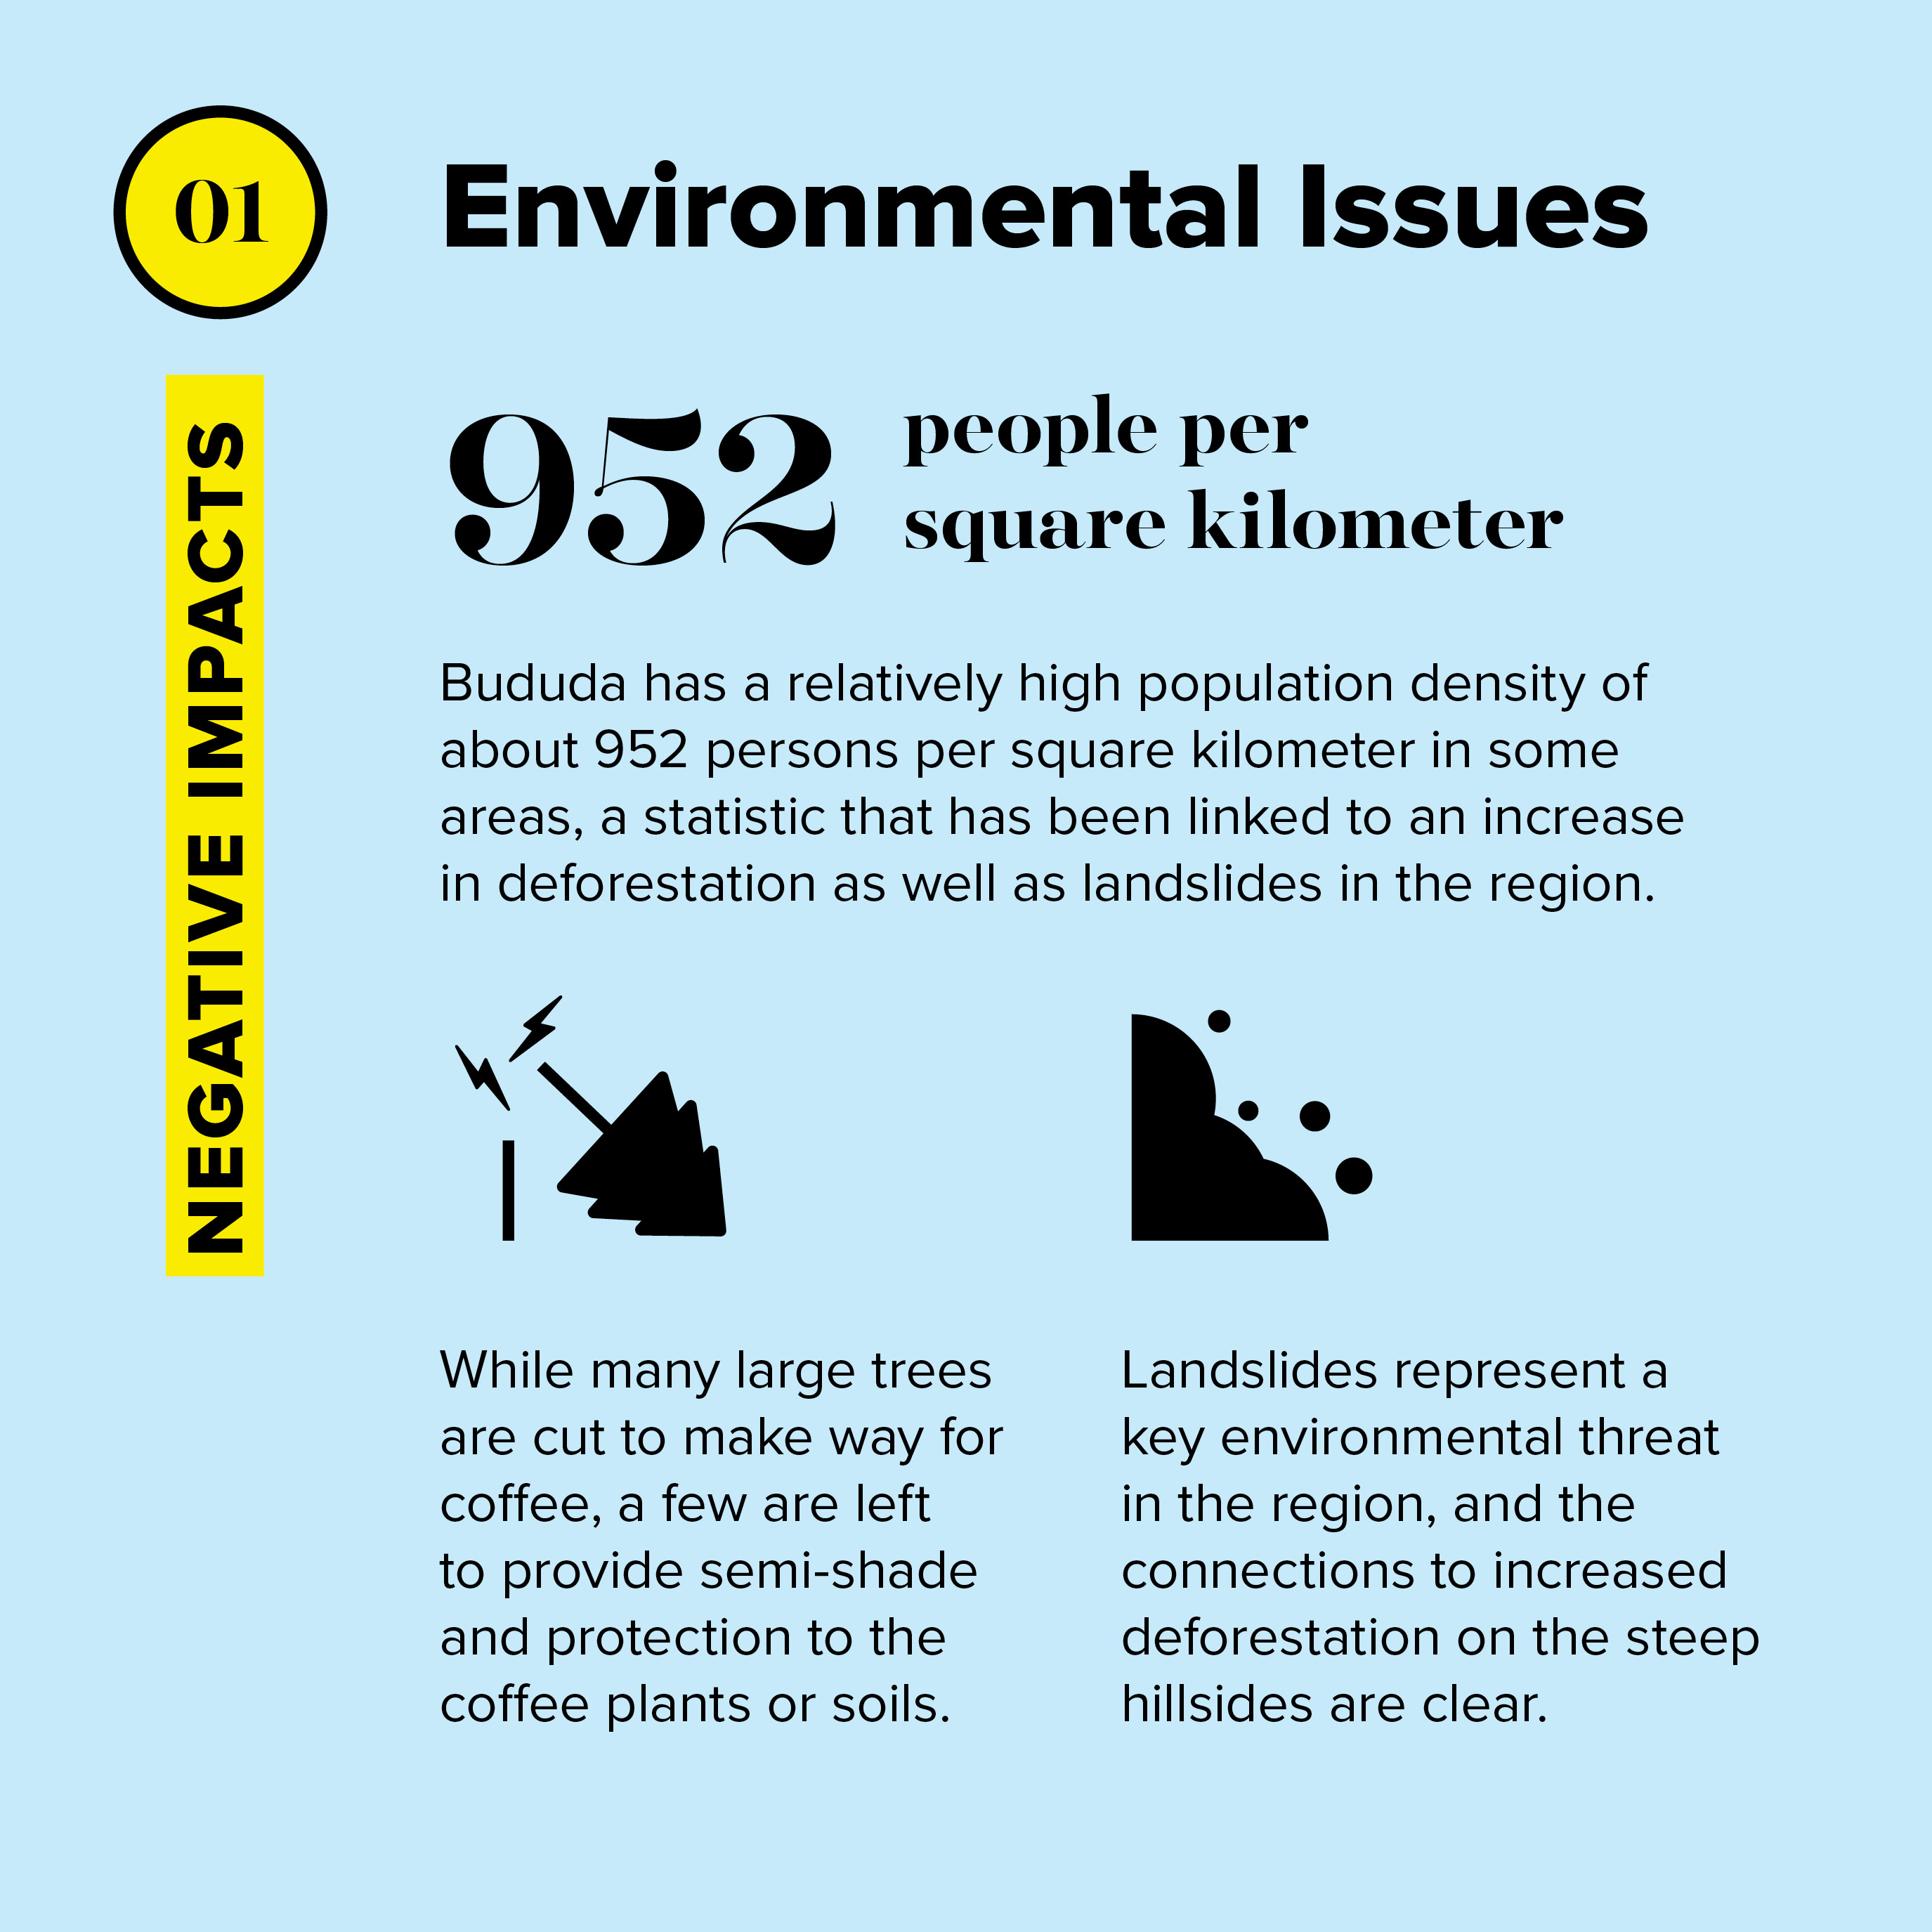 Bududa has a relatively high population density of about 952 persons per square kilometer in some areas, a statistic that has been linked to an increase in deforestation as well as landslides in the region.